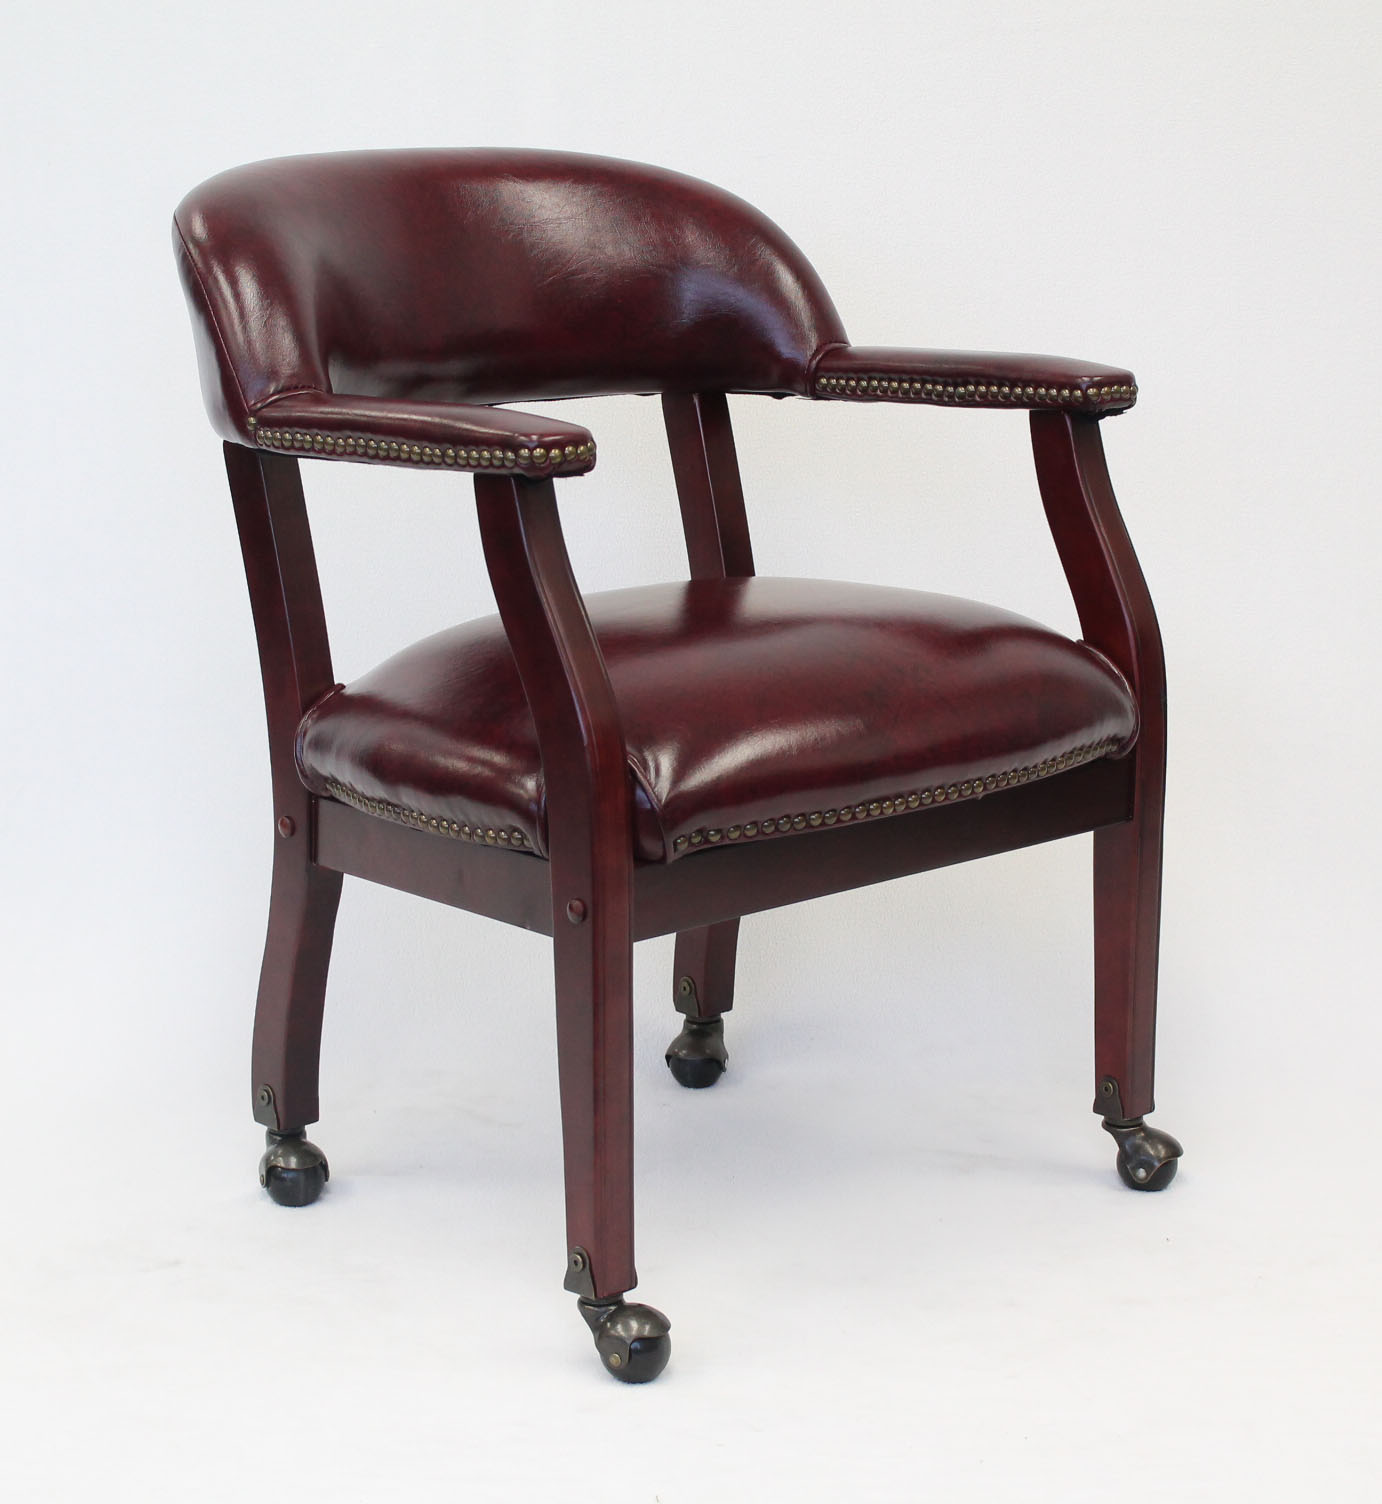 Boss Office & Home Traditional Burgundy Ivy League Executive Captains Chair with Casters